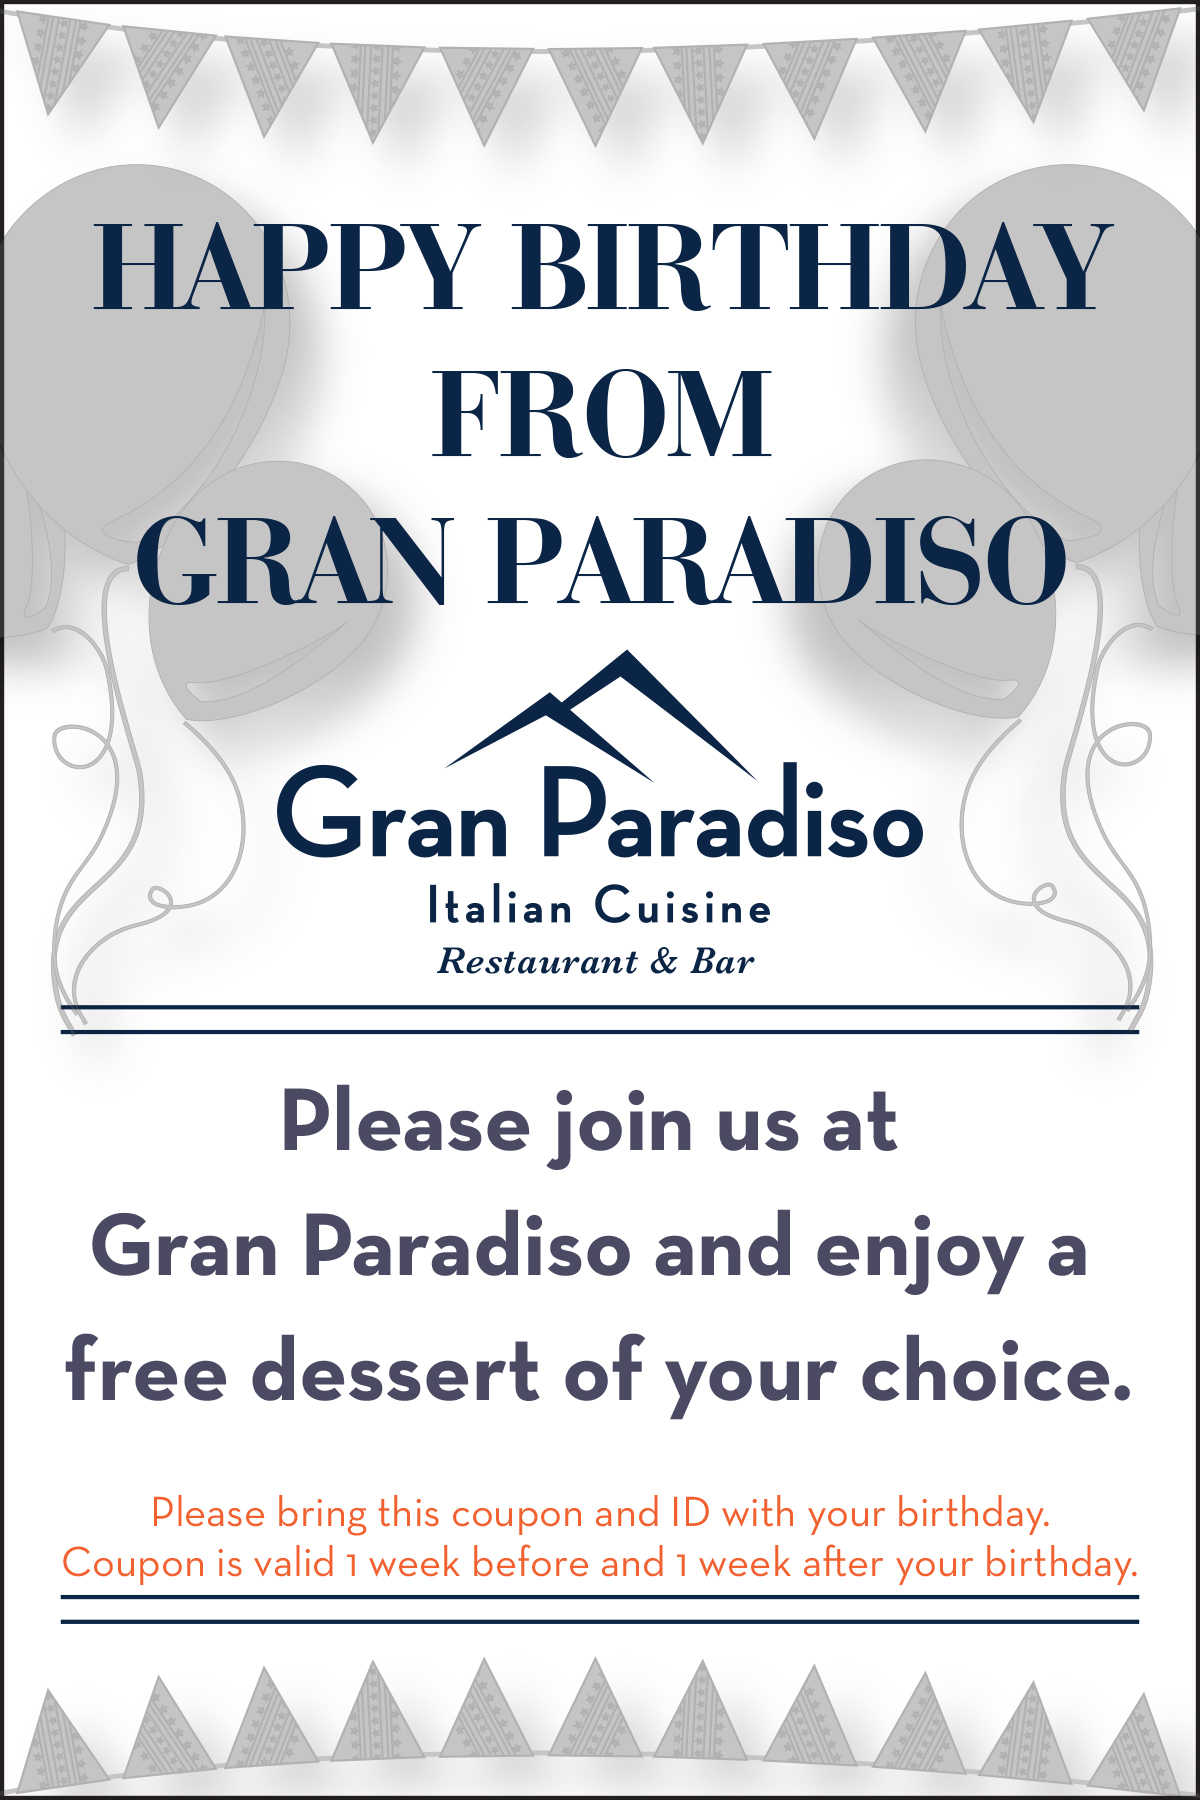 Gran Paradiso Birthday Email-PROOF